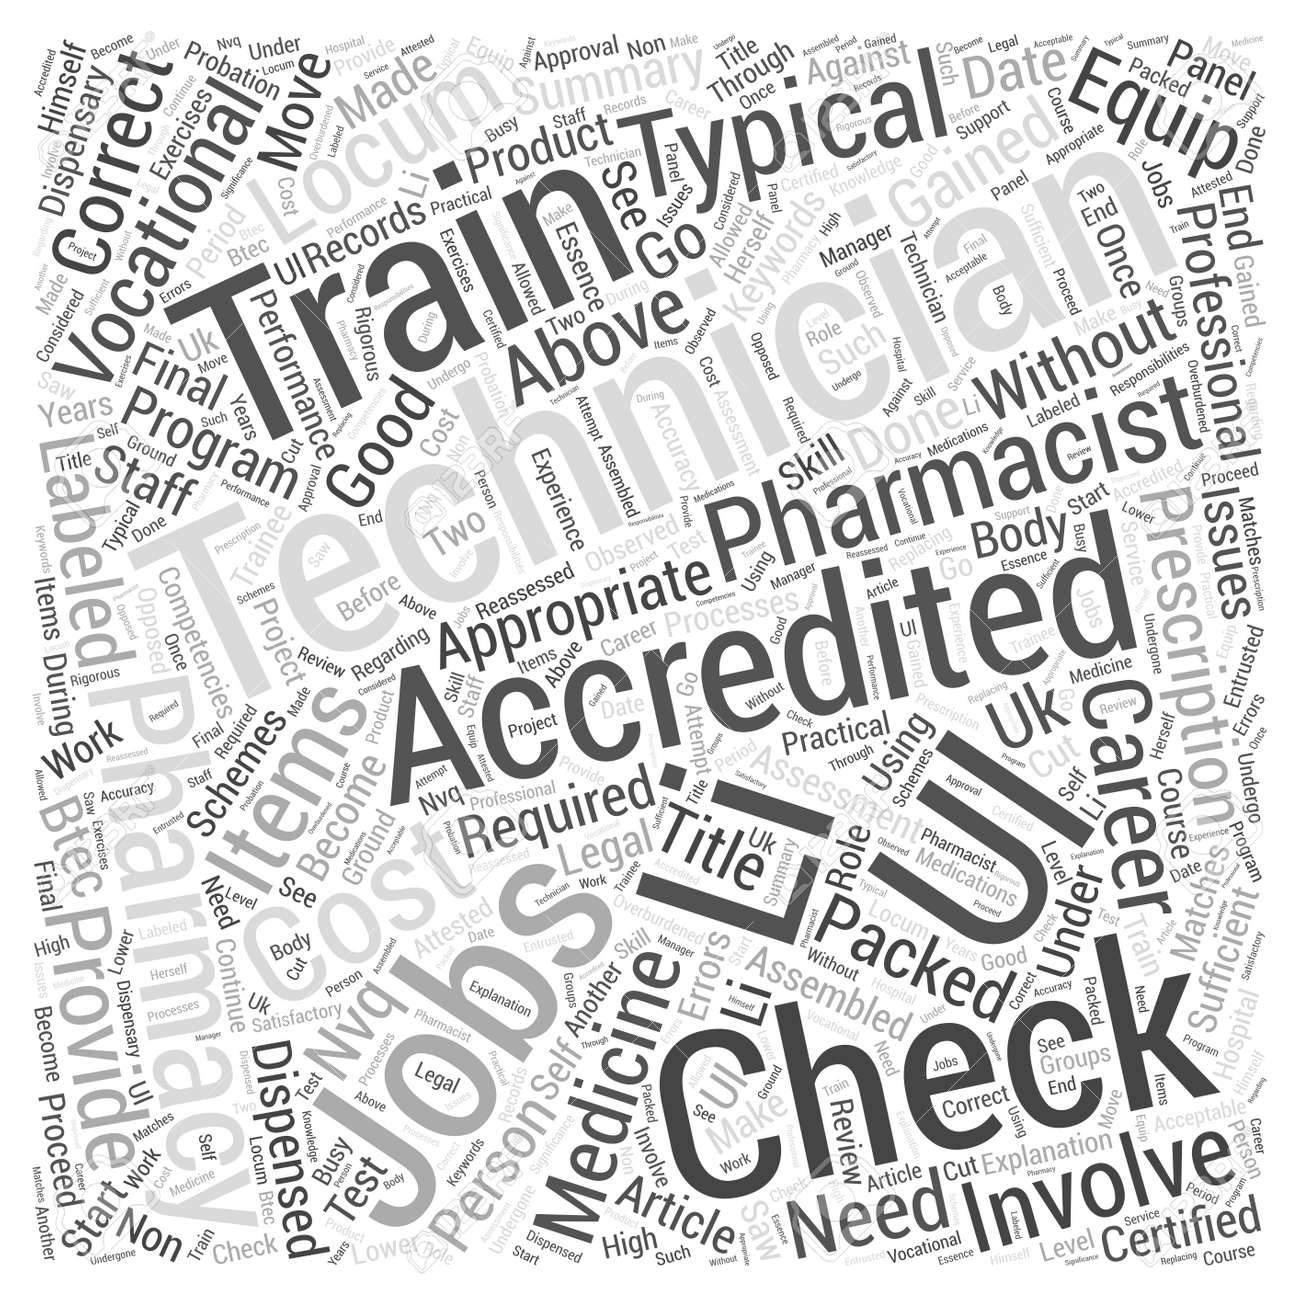 accredited checking technician jobs provide a good vocational career word cloud concept stock vector 73065916